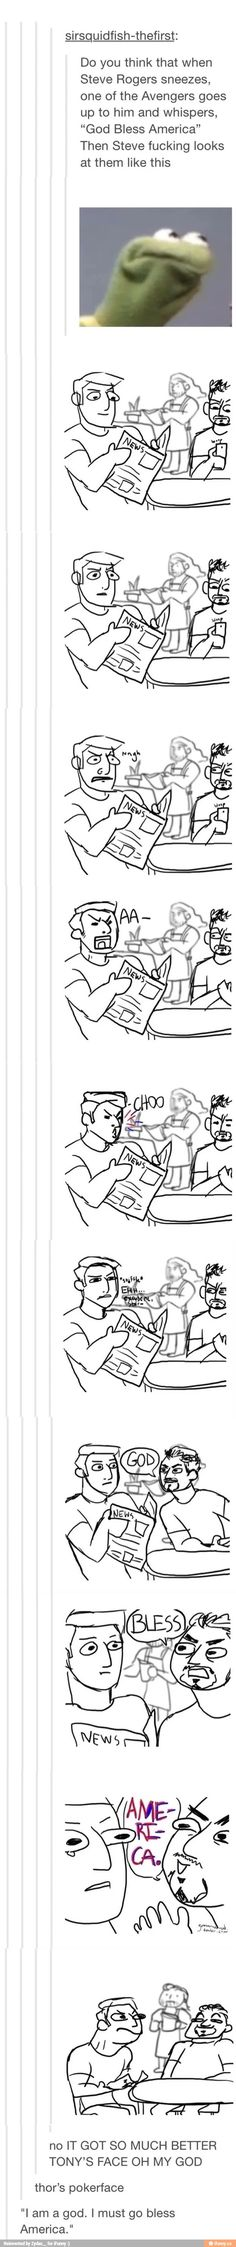 SOMEONE DREW IT. I LOVE YOU. I KNEW IT WOULD BE TONY THAT WOULD SAY THIS.